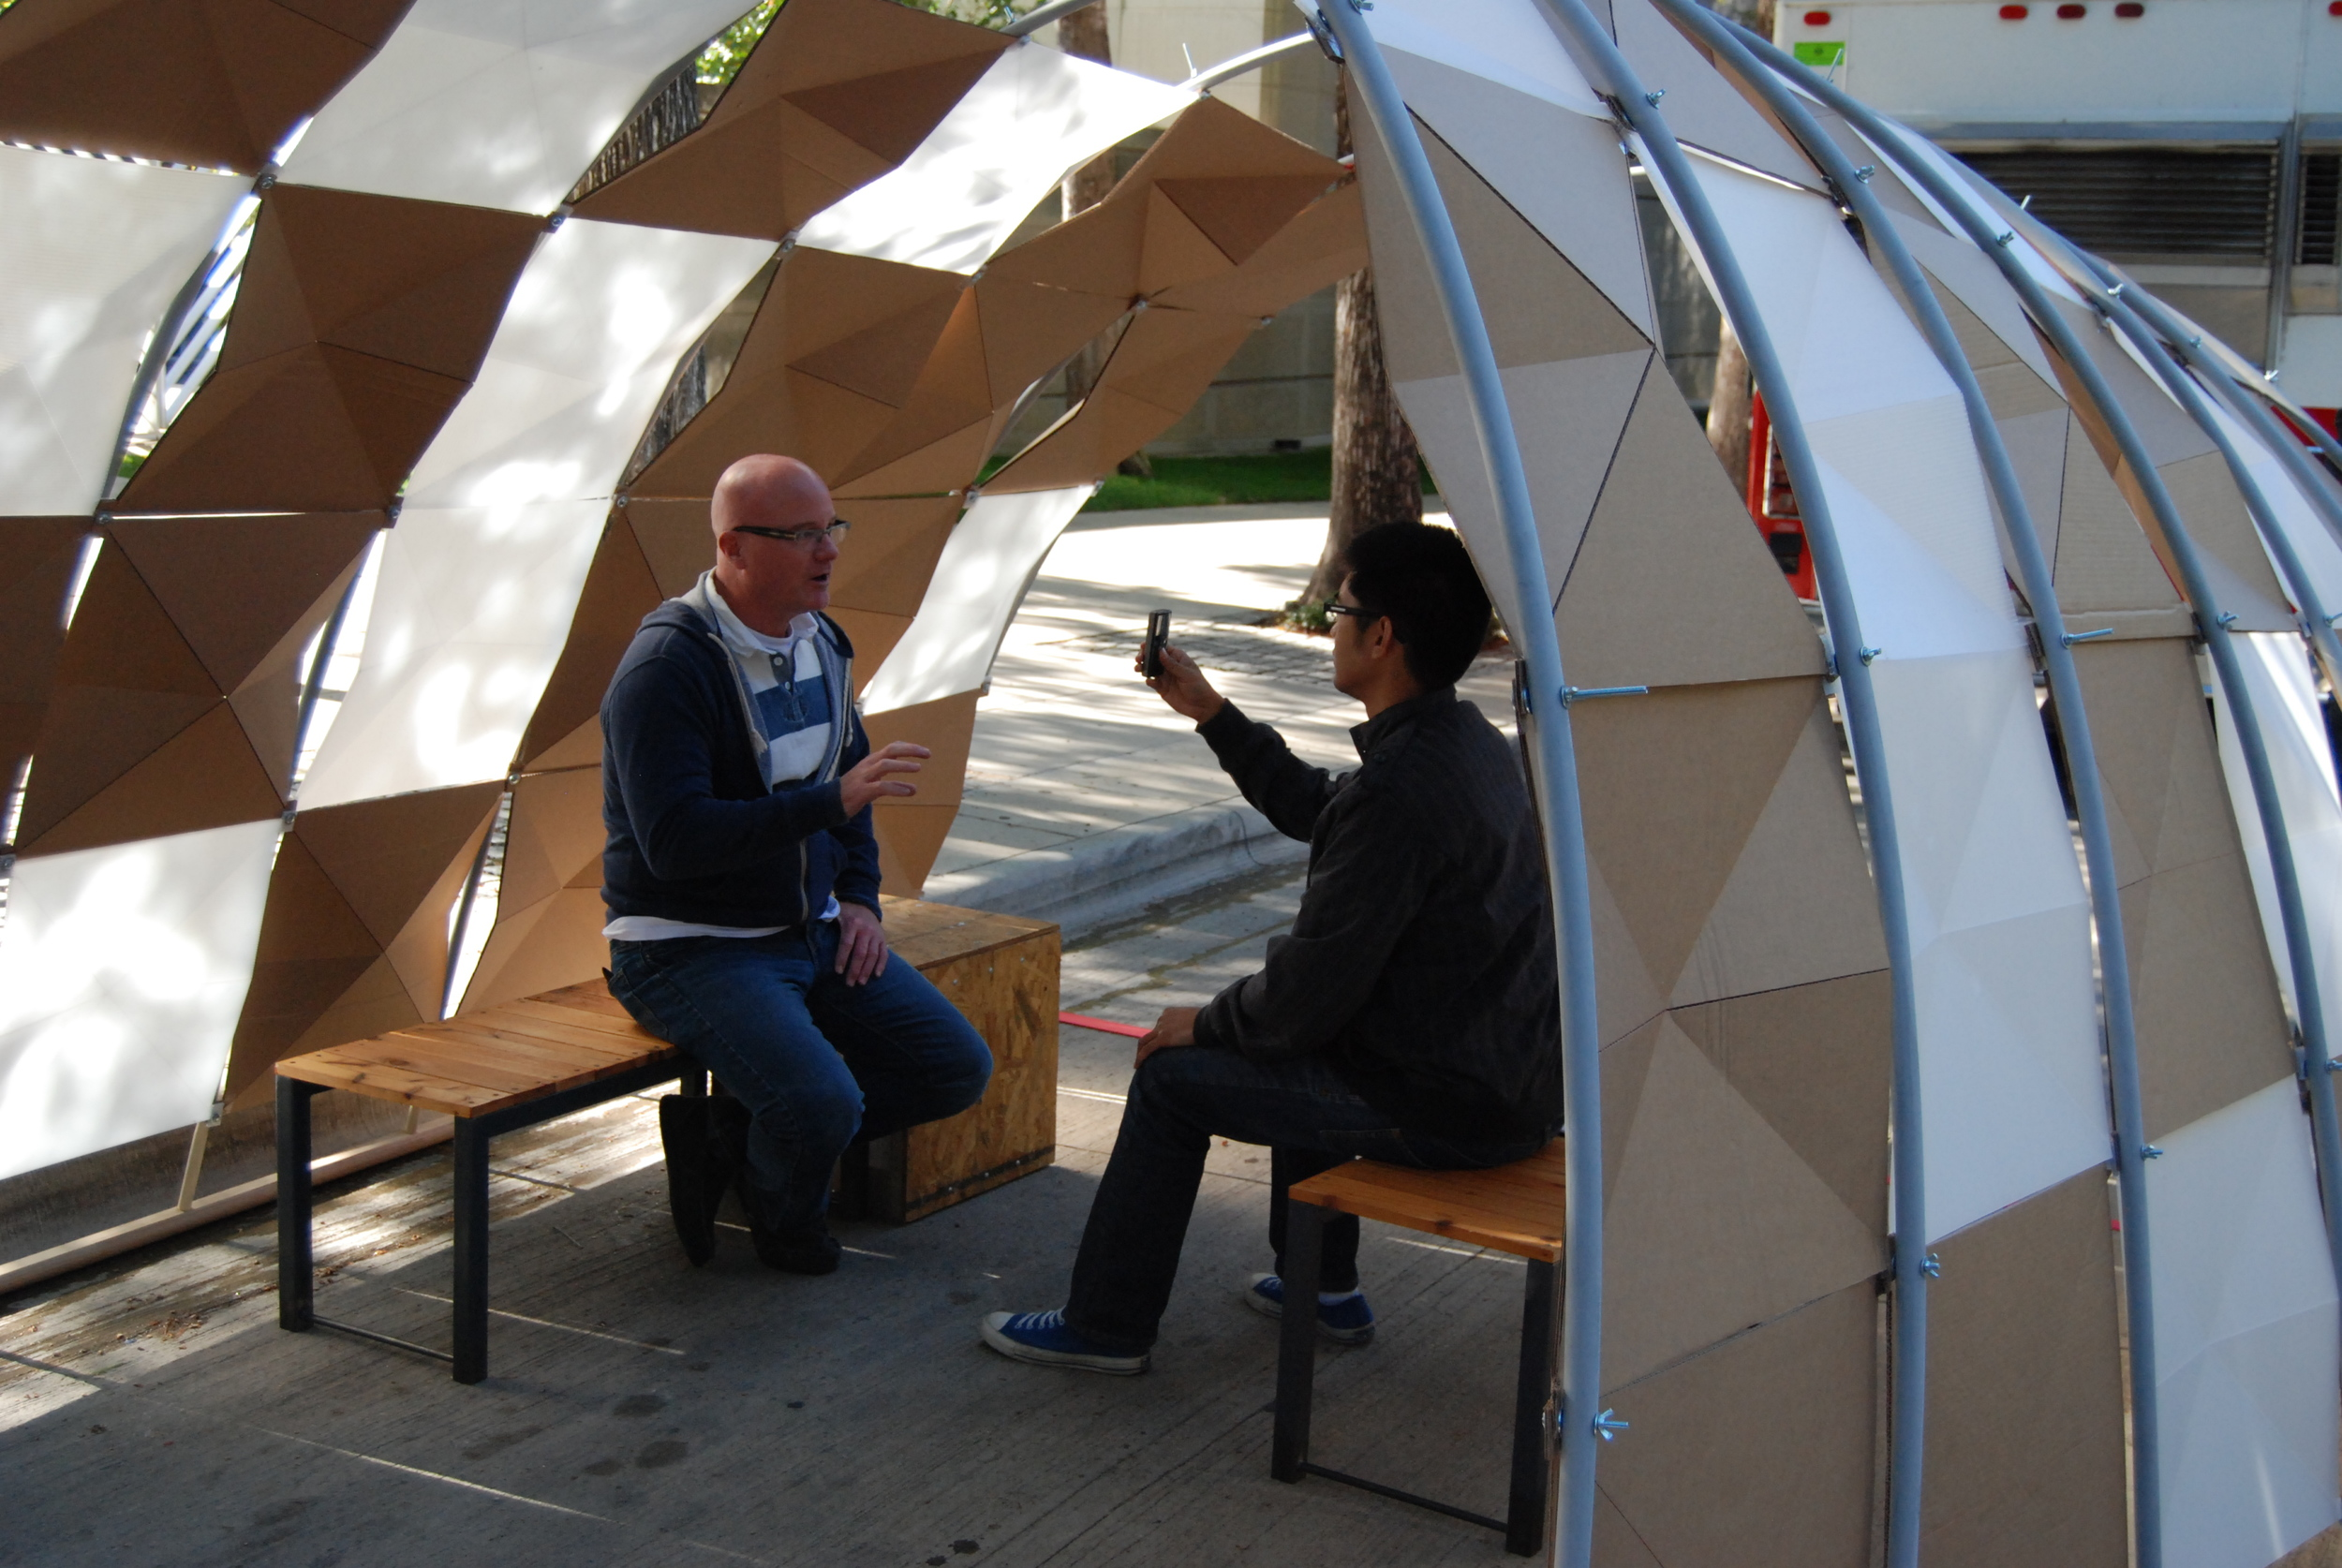 The Story House made its outdoor debut to collect Neighborhood Stories